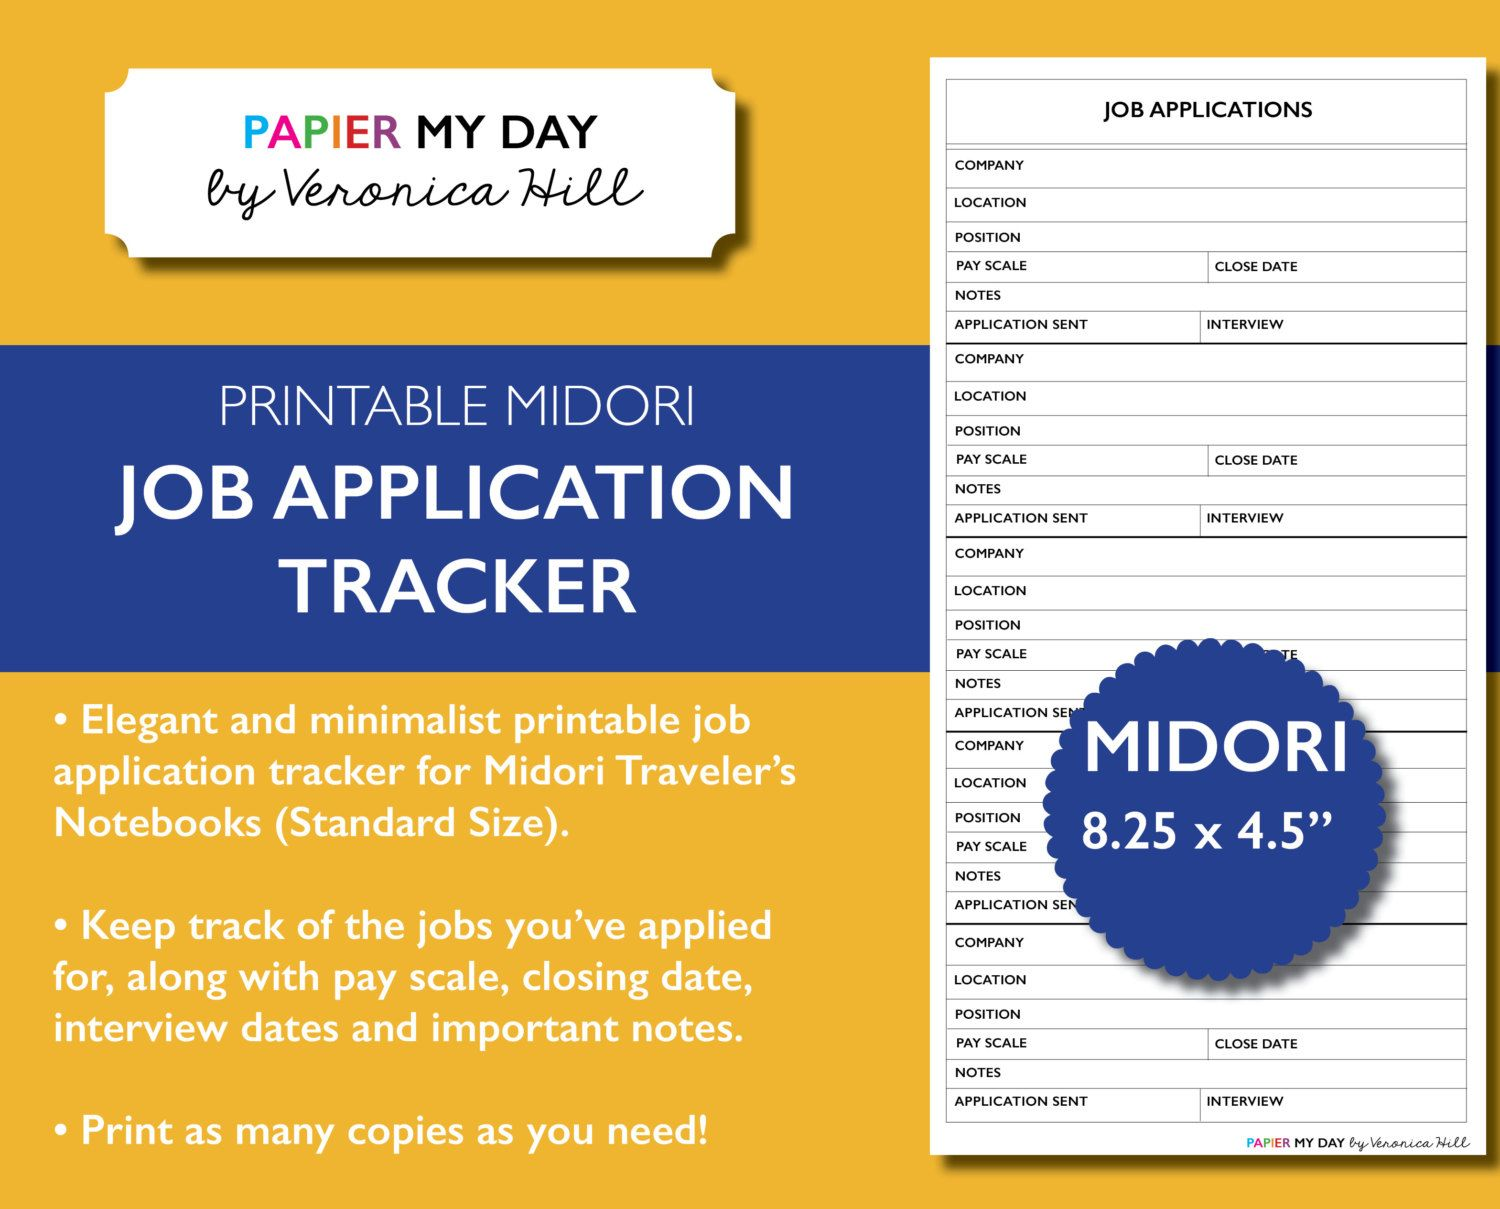 Midori Travelers Notebook Job Application Tracker  Printable Job